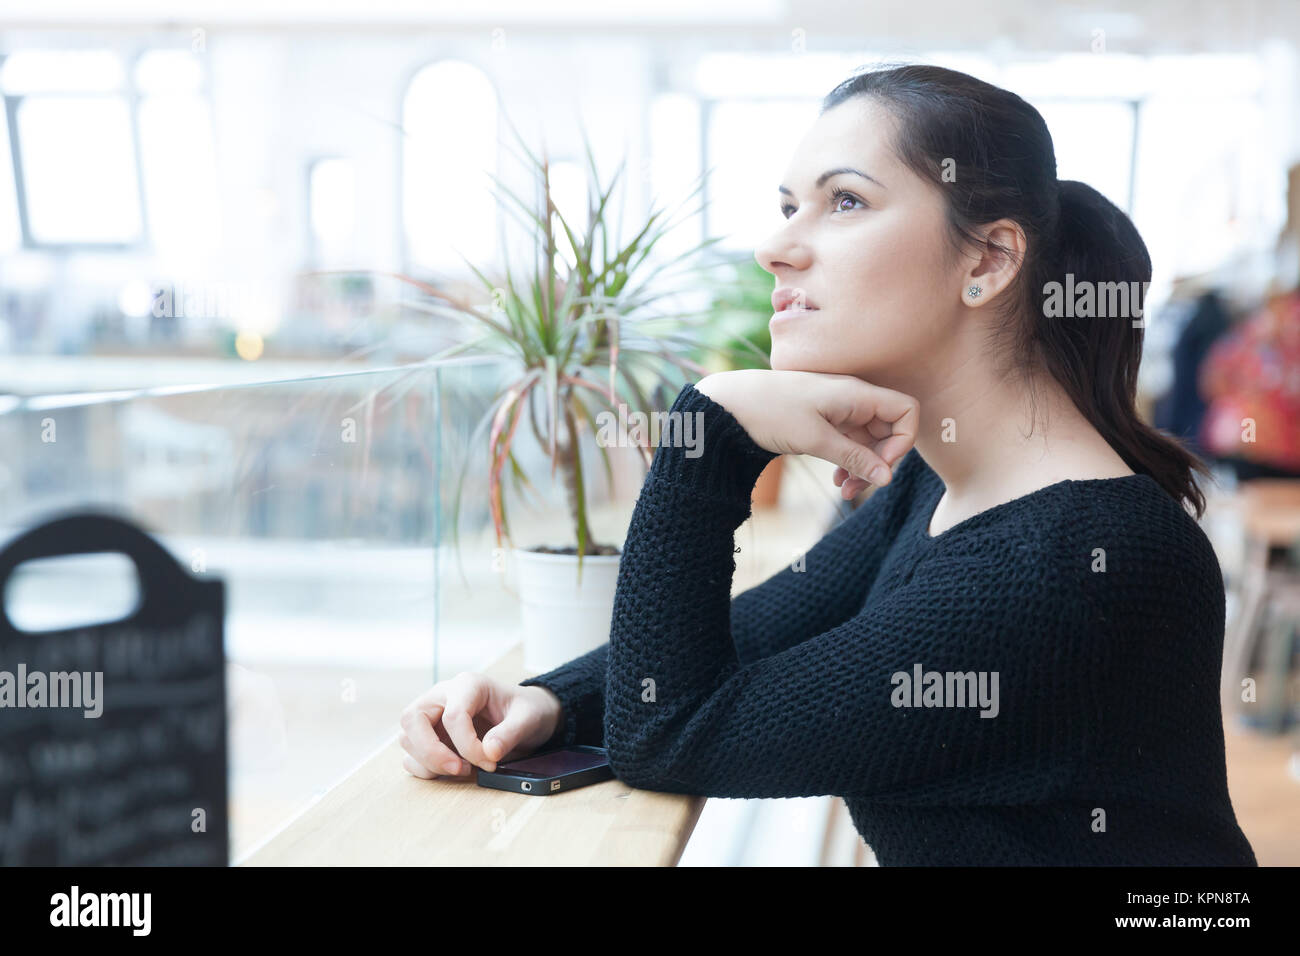 Day dreaming woman - Stock Image